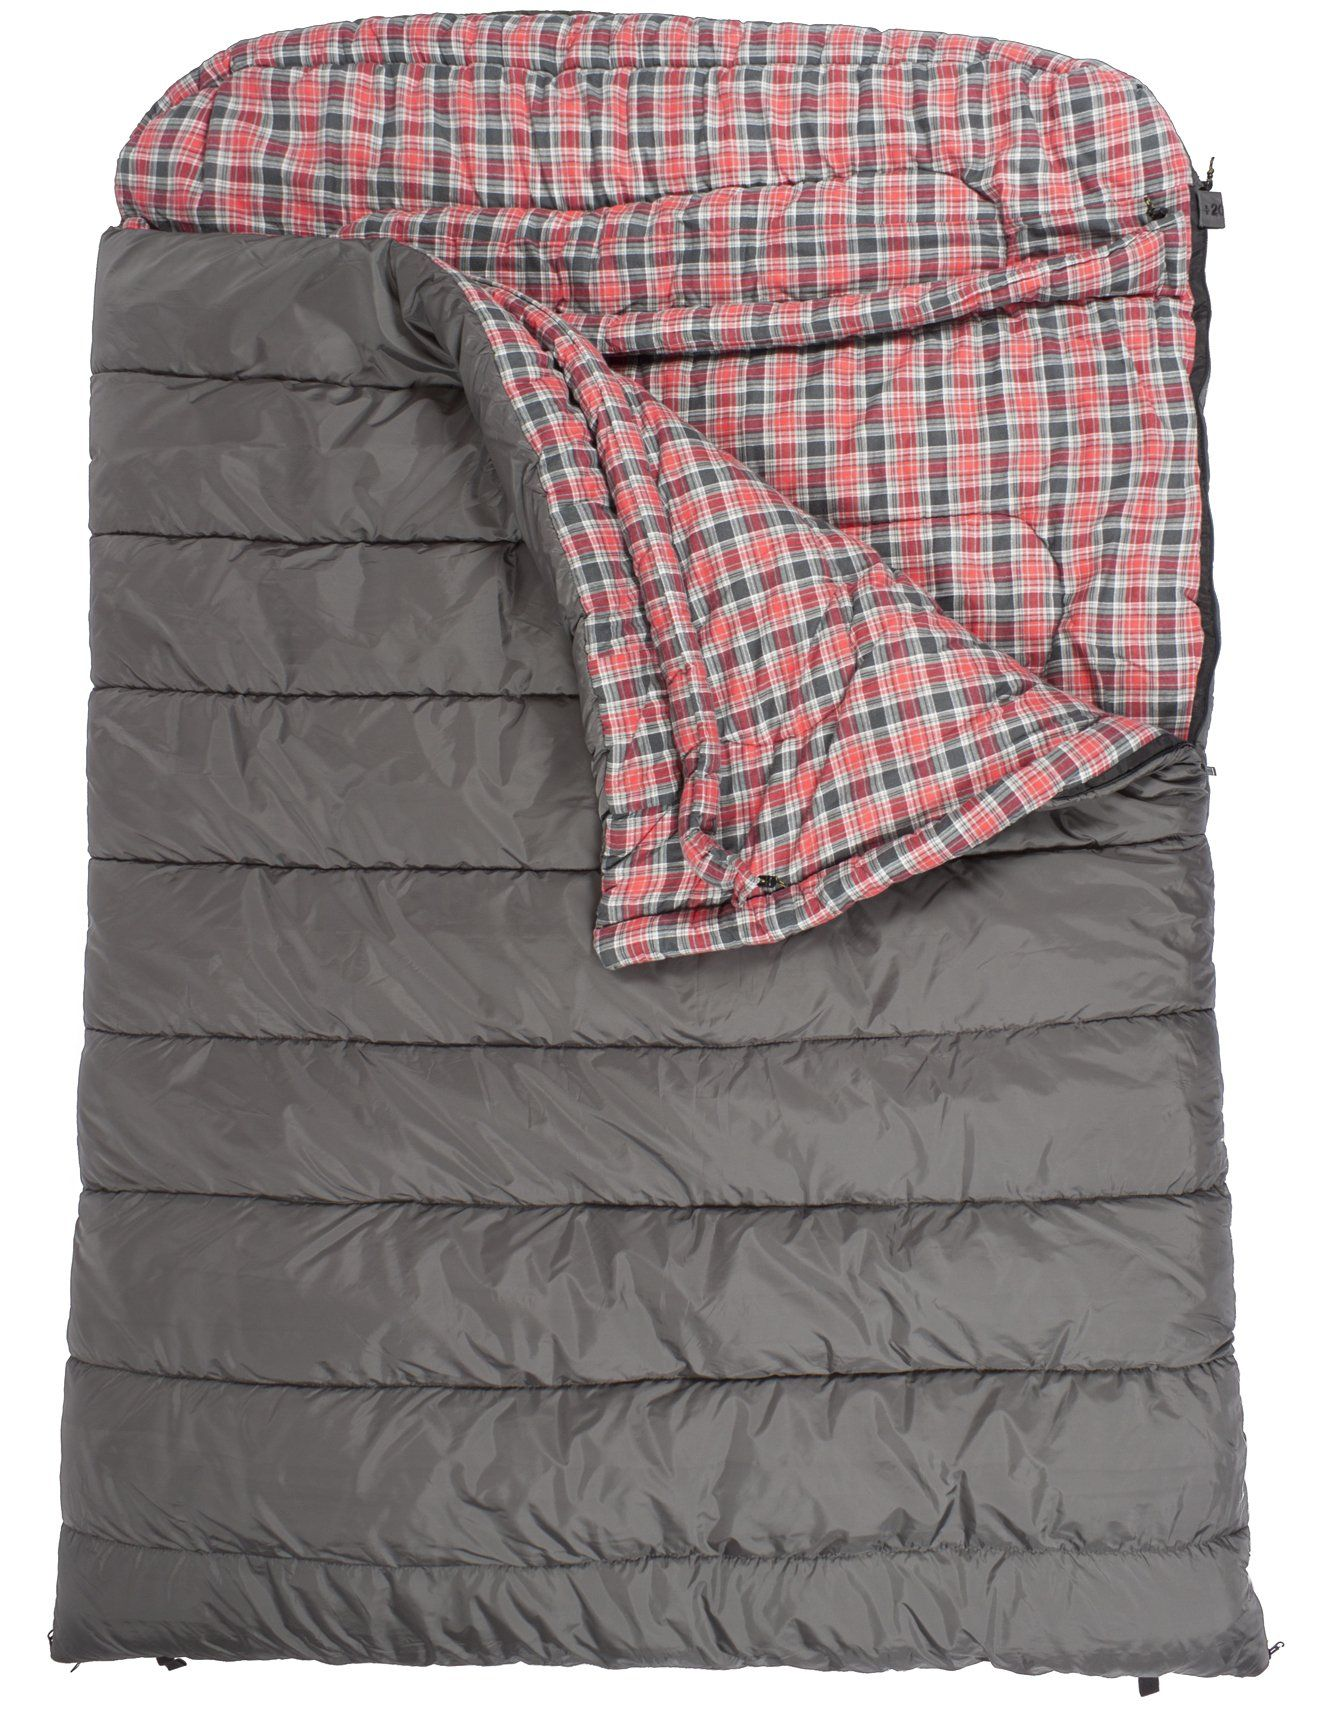 Teton Sports Mammoth Queen Size Flannel Lined Sleeping Bag 94 X 62 Grey 20 Degree F Double Outdoors